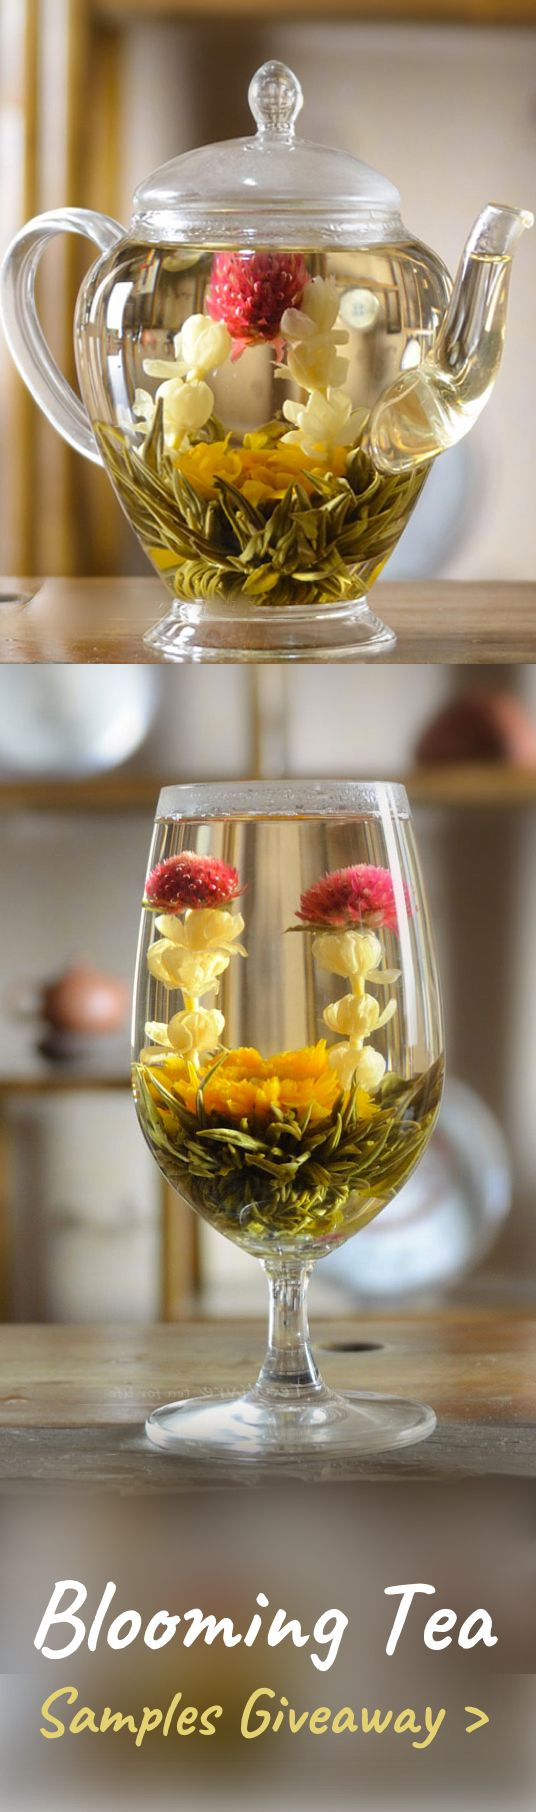 Gift Ideas For Dinner Party Part - 38: We Are Giving Away FREE Samples Of Our Organic Blooming Tea. Itu0027s A Great  Christmas Gift Idea For Tea Lovers, Or For Hosting A Dinner Party.